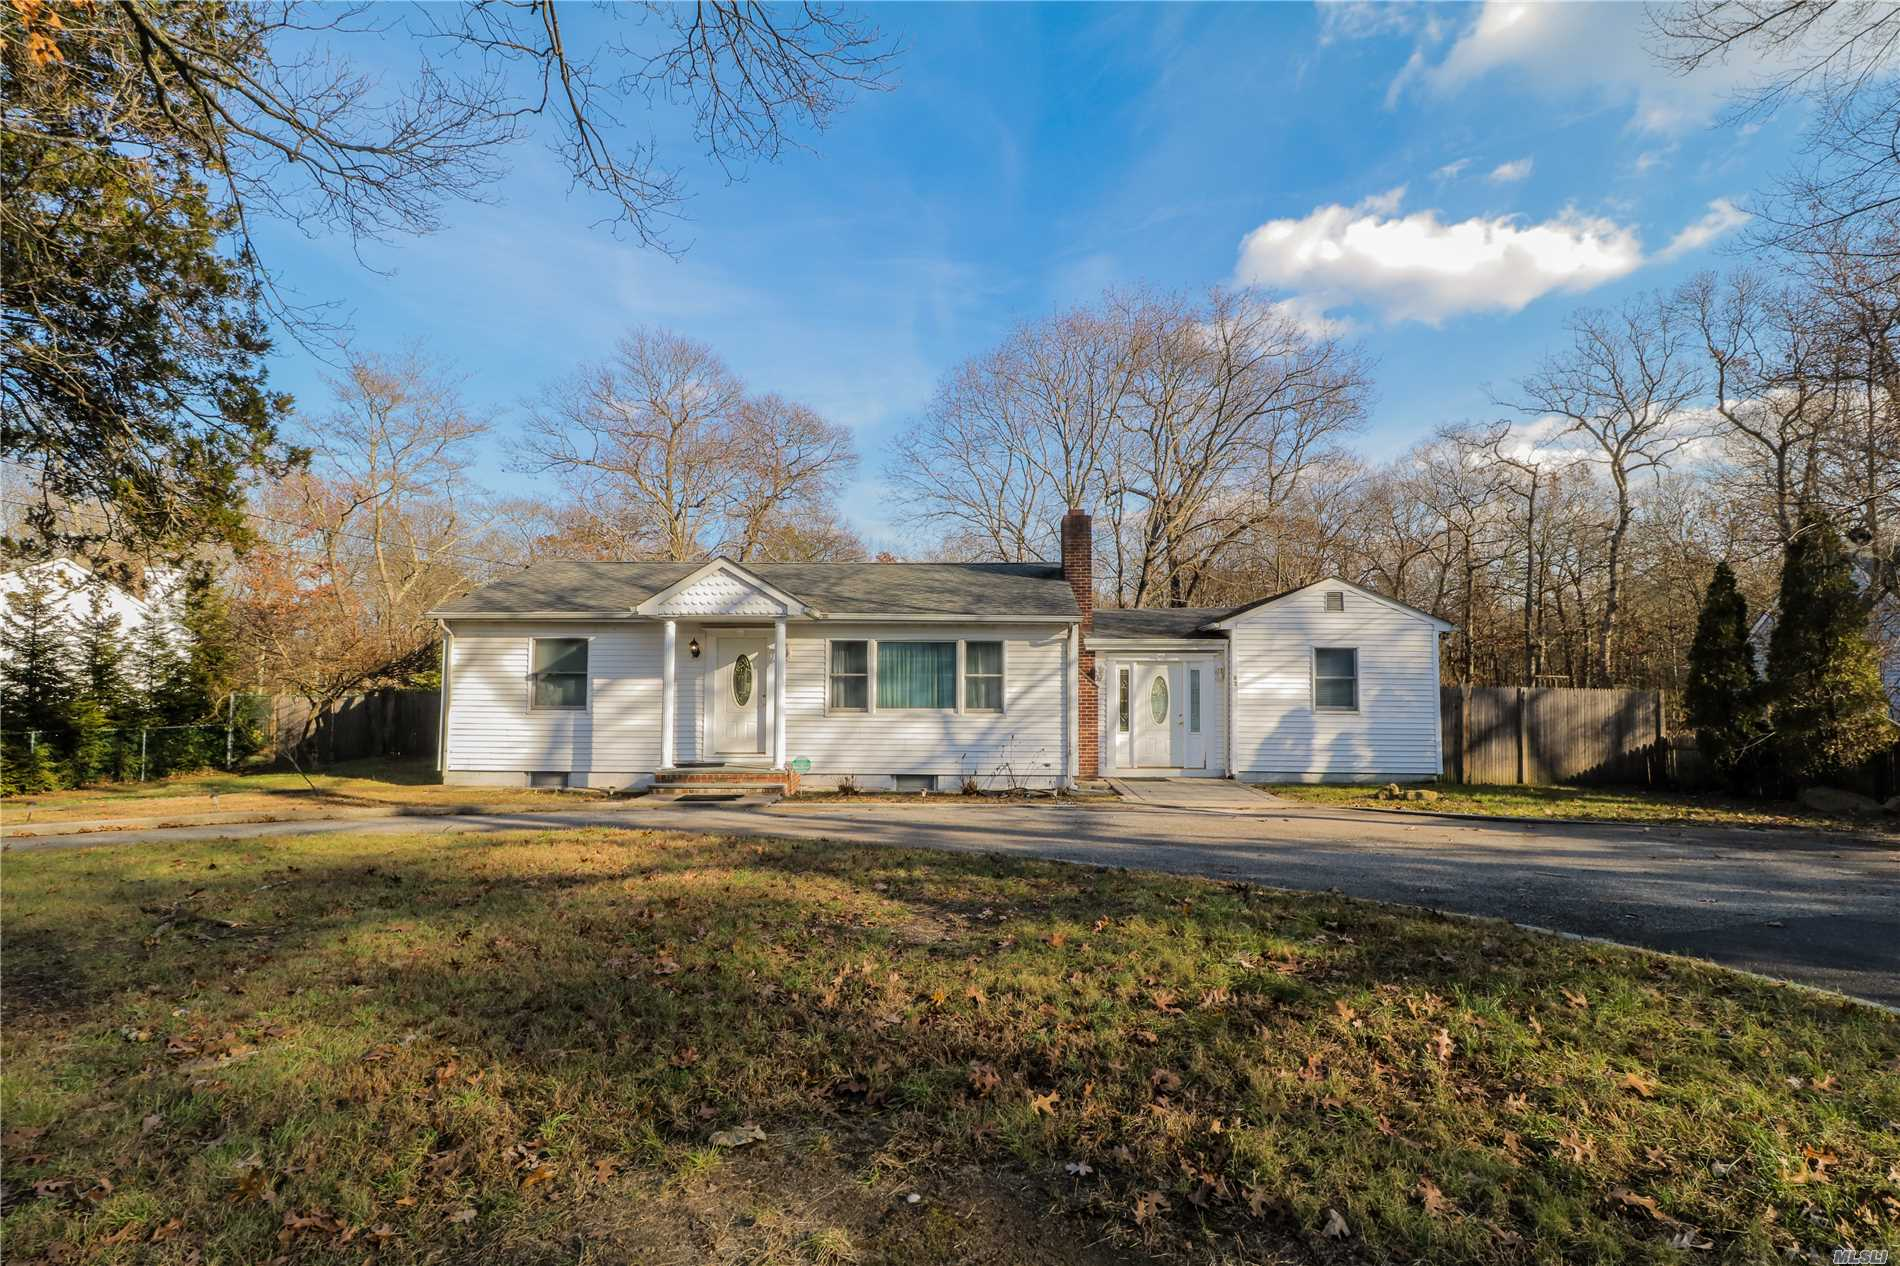 Beautiful Ranch Style Home That Sits On Almost An Acre Of Property. House Has Been Updated Over The Past Few Years. Updated Kitchen, Baths, Floors, Windows & Siding. Full Finished Basement With Wet Bar. Master Bedroom Can Easily Be Converted Back To The Original Two Bedrooms & You'll Have A 4 Bedroom Home.